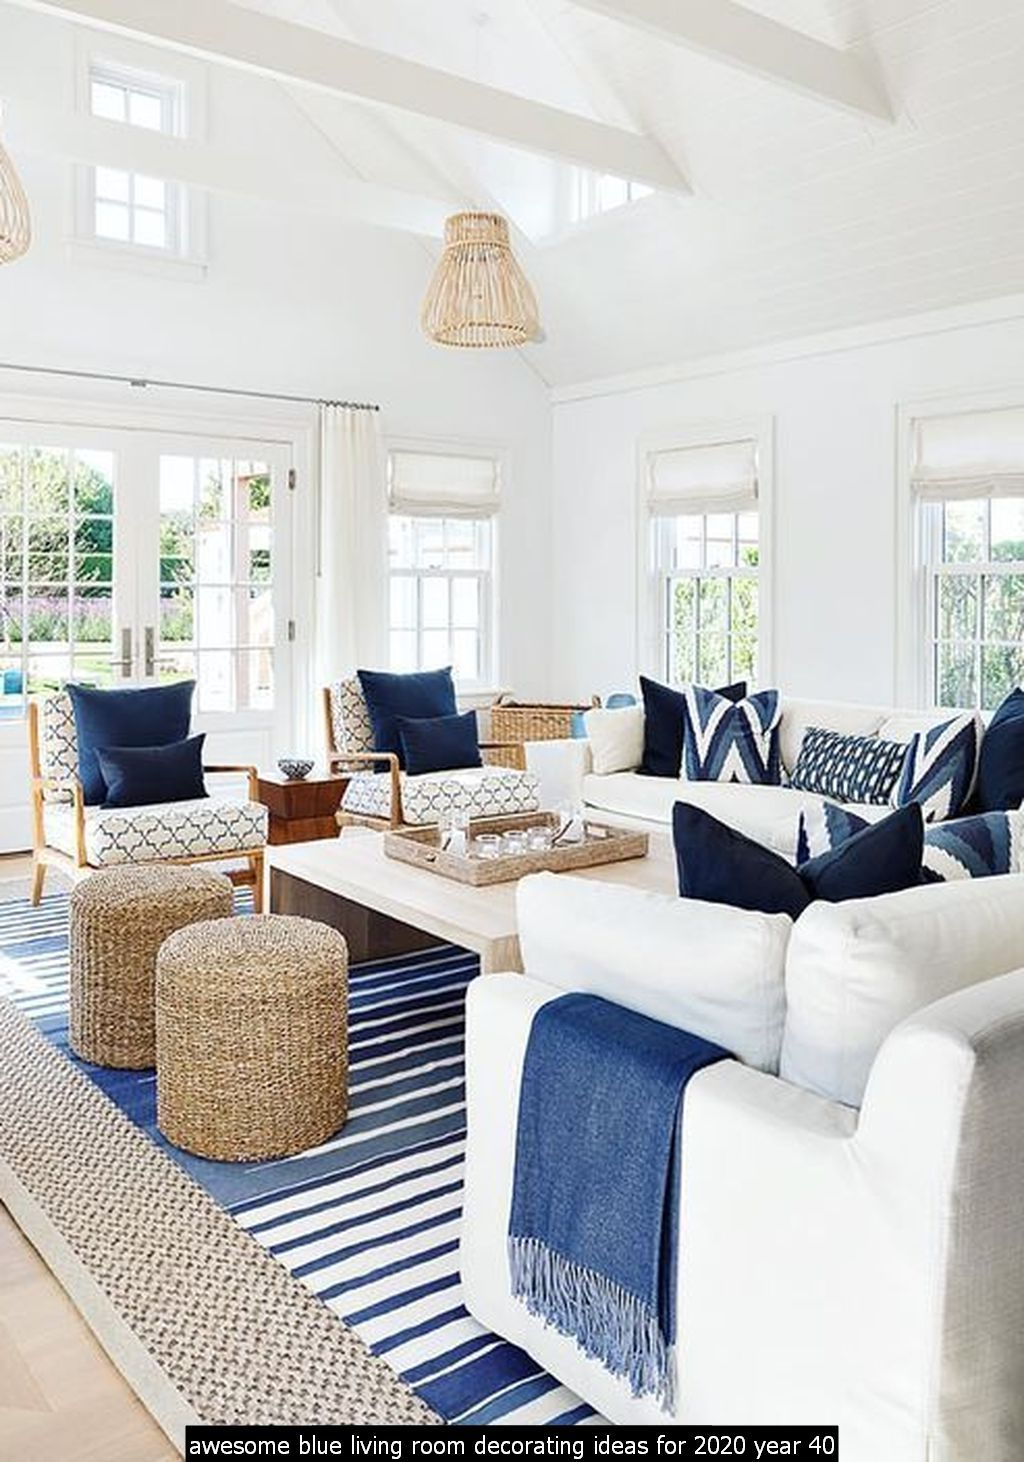 43 Awesome Blue Living Room Decorating Ideas For 2020 Year In